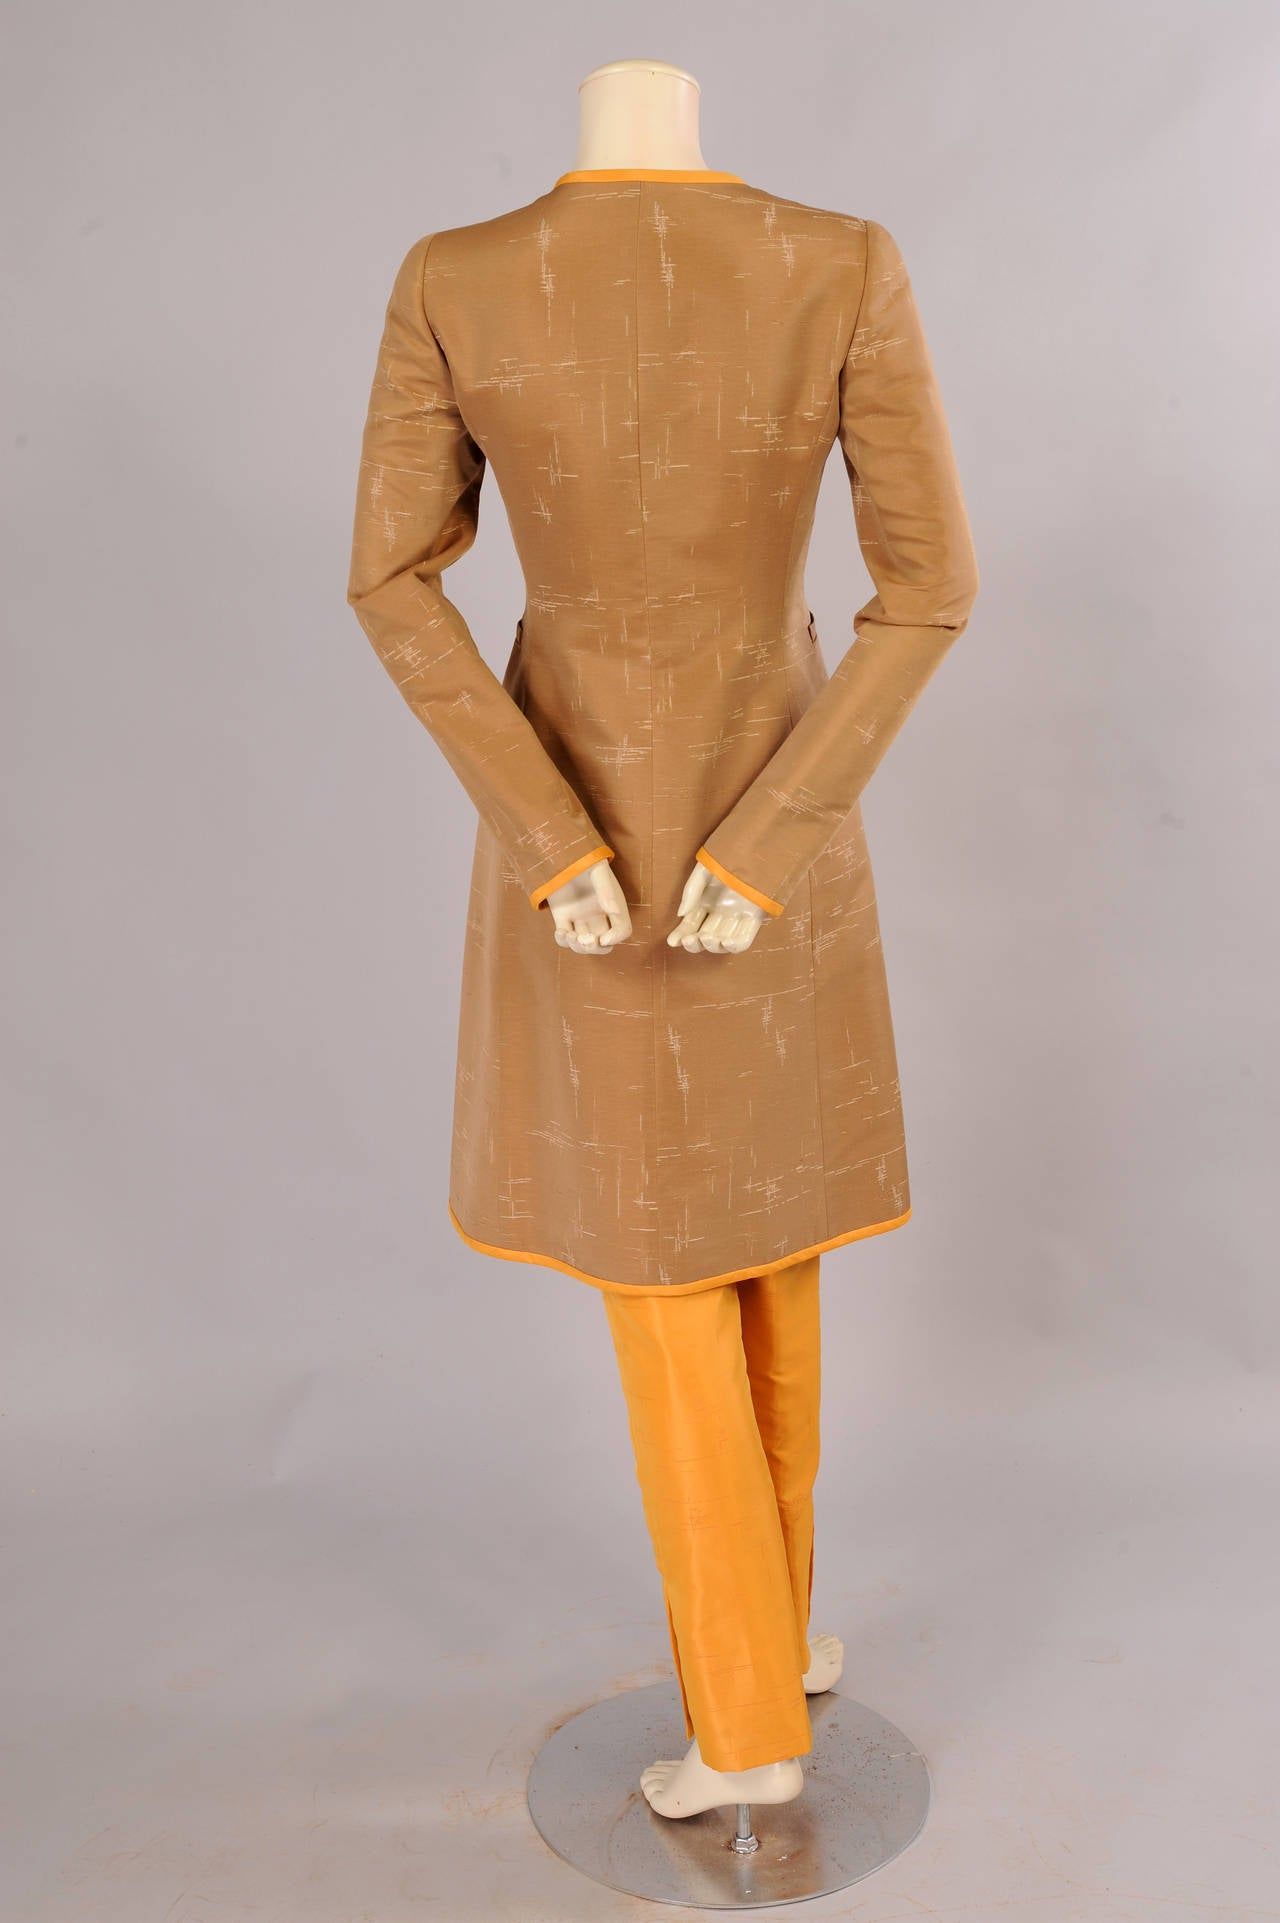 Oscar de la Renta Slim Coat & Pants Ensemble in Tan and Saffron Silk In Excellent Condition For Sale In New Hope, PA